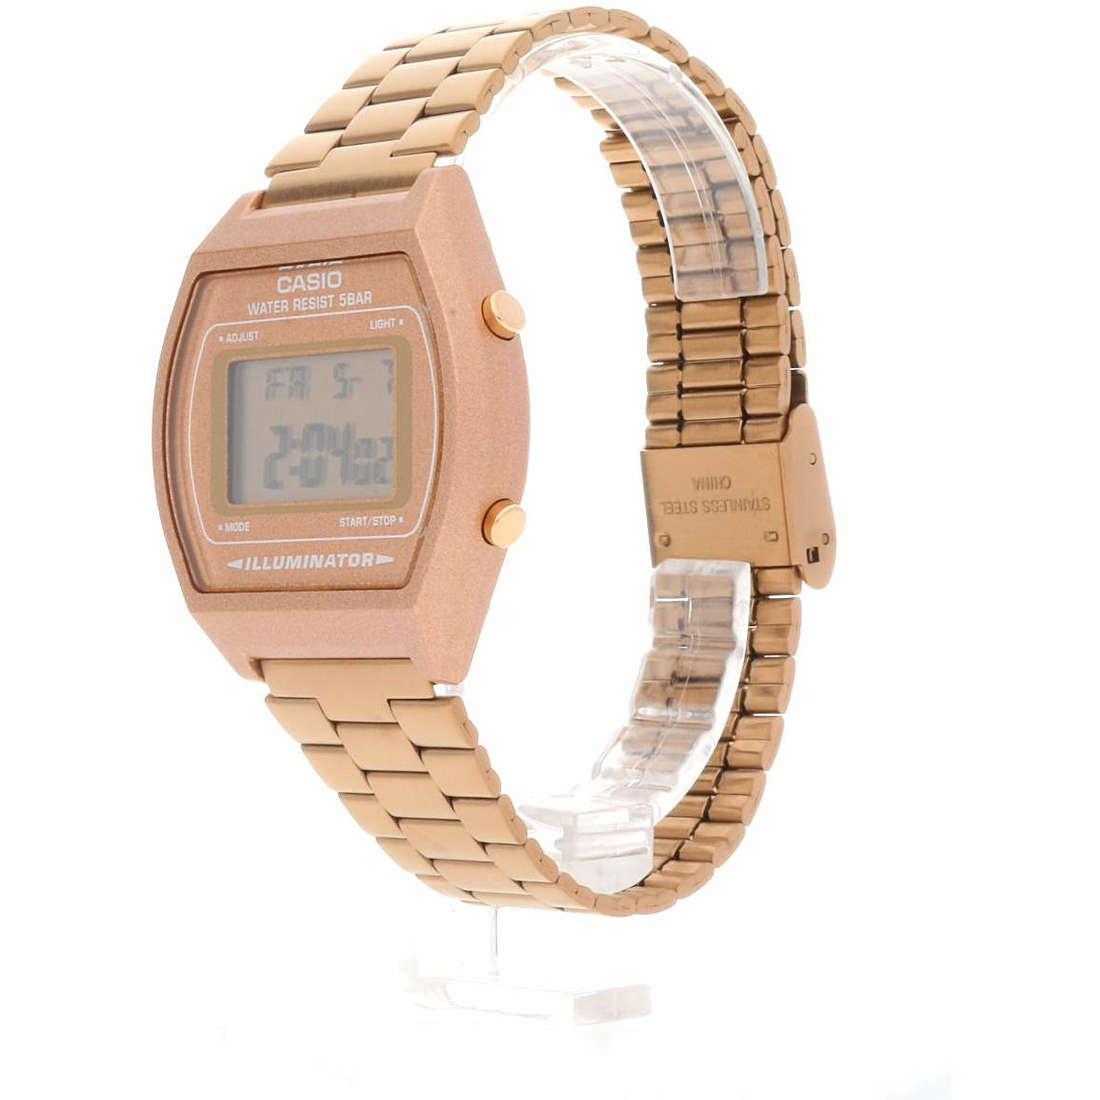 sale watches woman Casio B640WC-5AEF